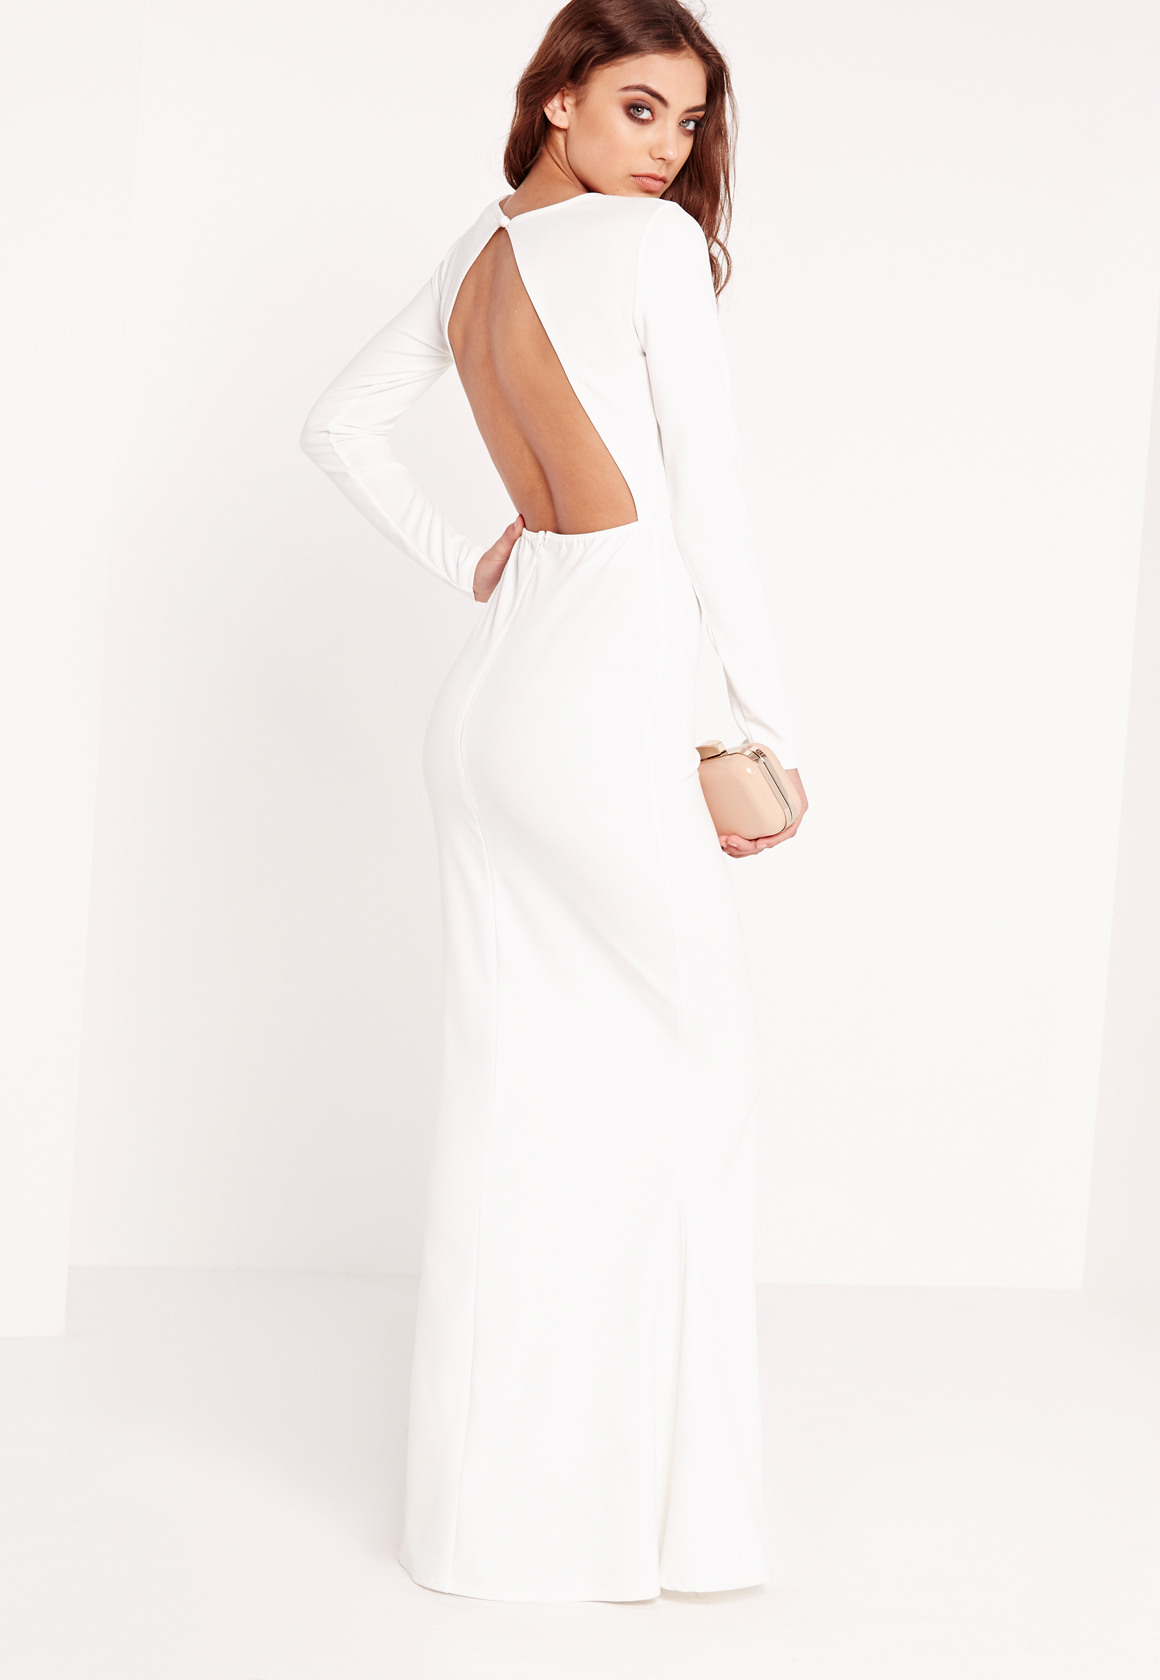 440784dfd6 Lyst - Missguided Long Sleeve Open Back Maxi Dress White in White